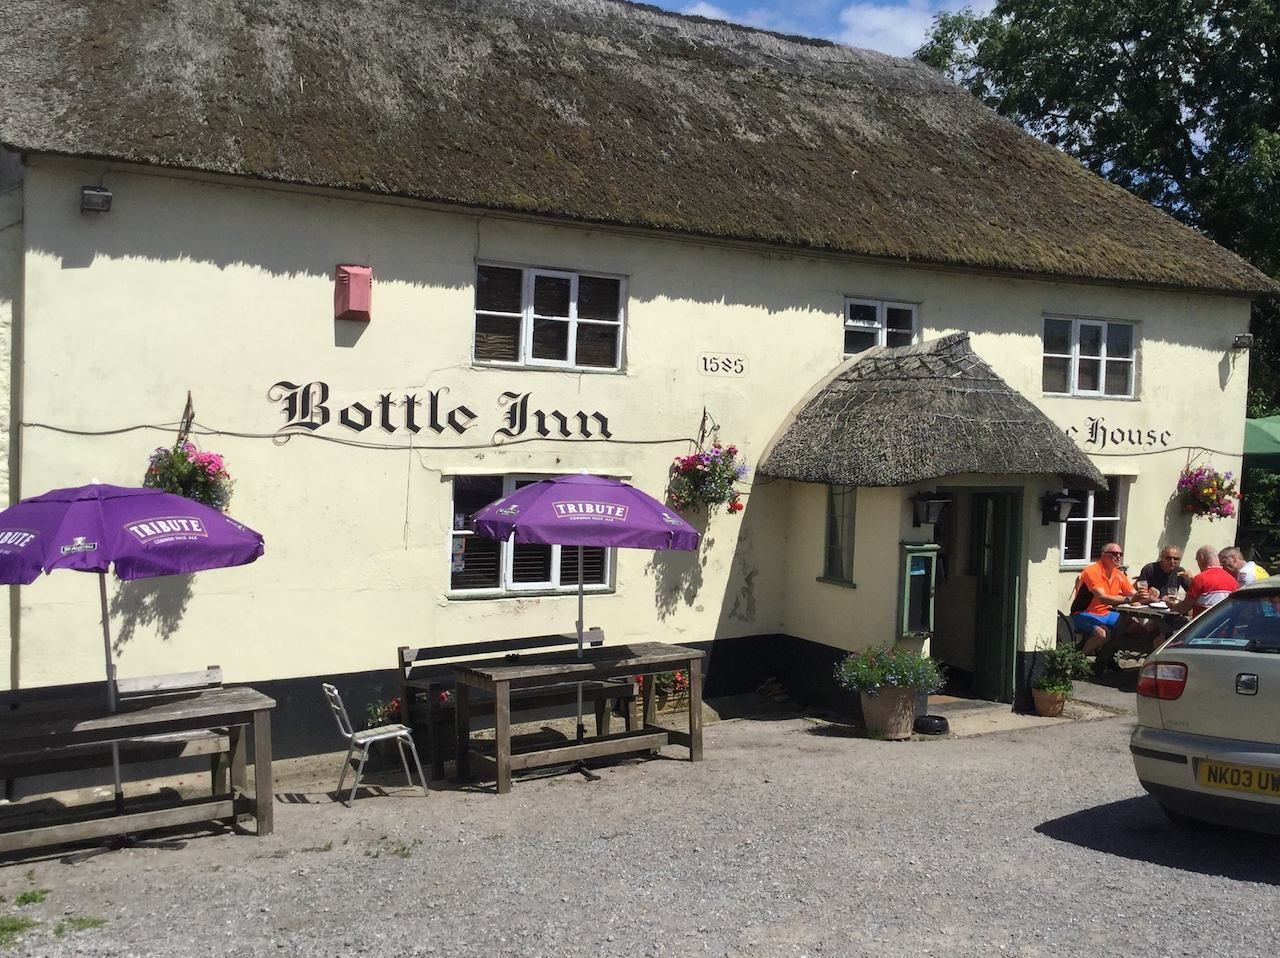 The Bottle Inn in England